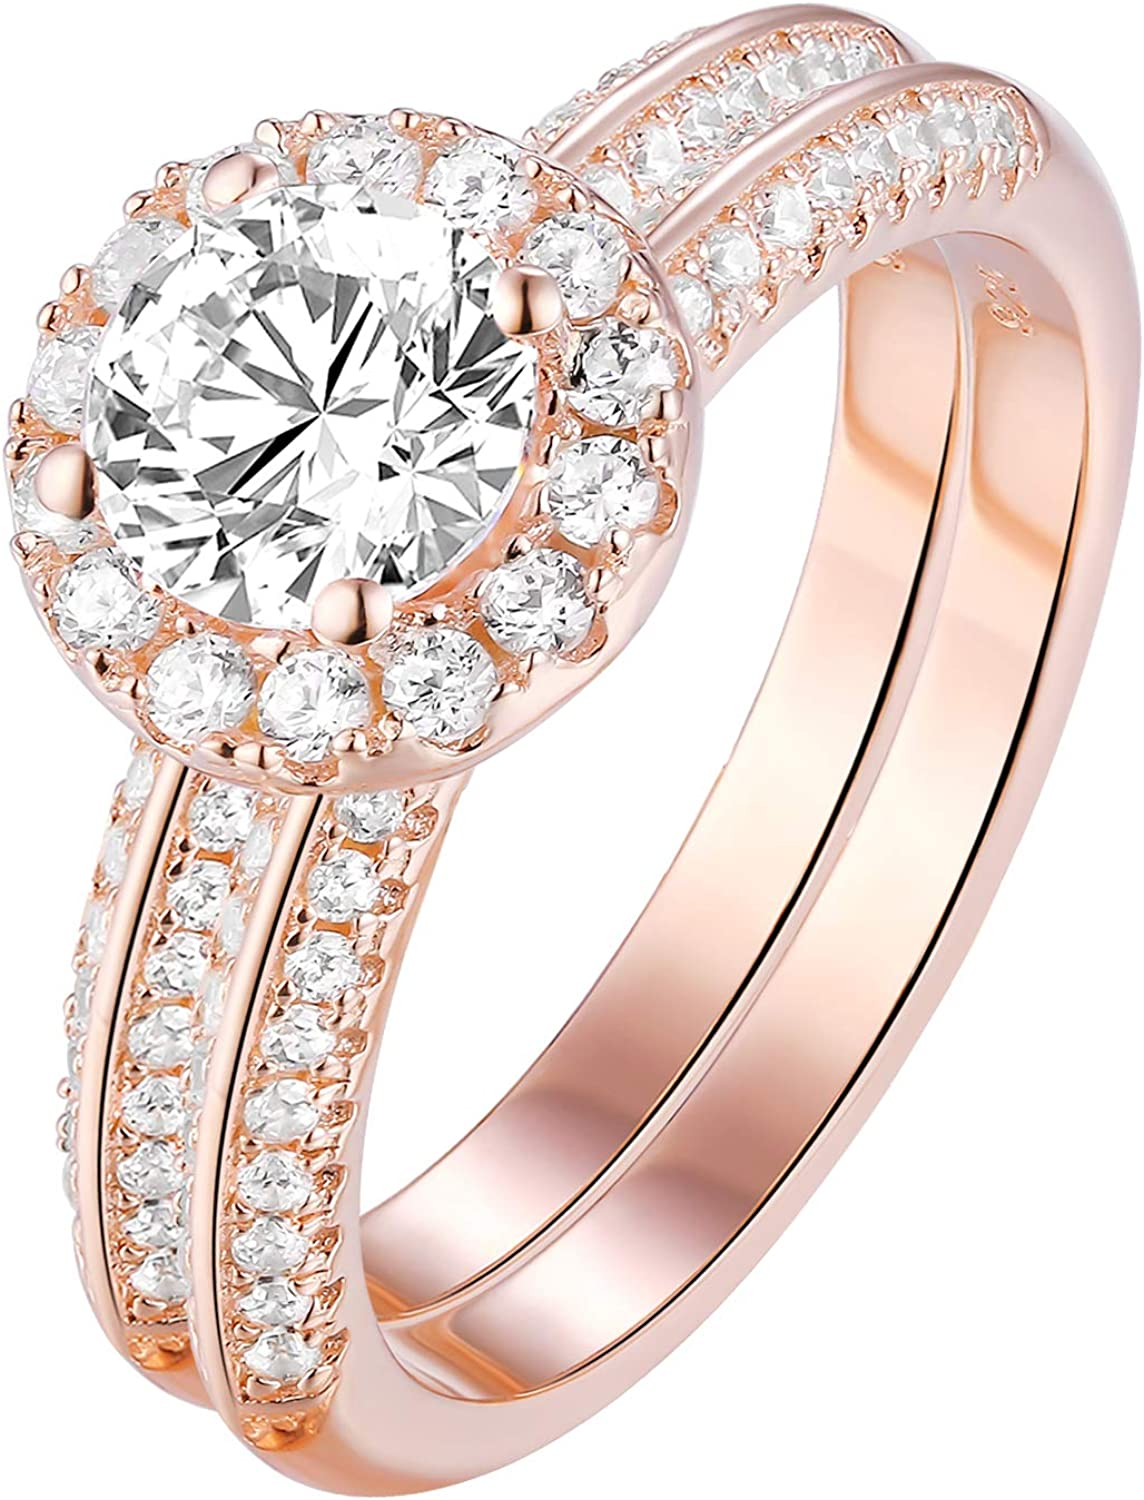 Amazon Com Newshe Rose Gold Engagement Wedding Ring Sets For Women 925 Sterling Silver Round White Cz Size 5 10 Jewelry